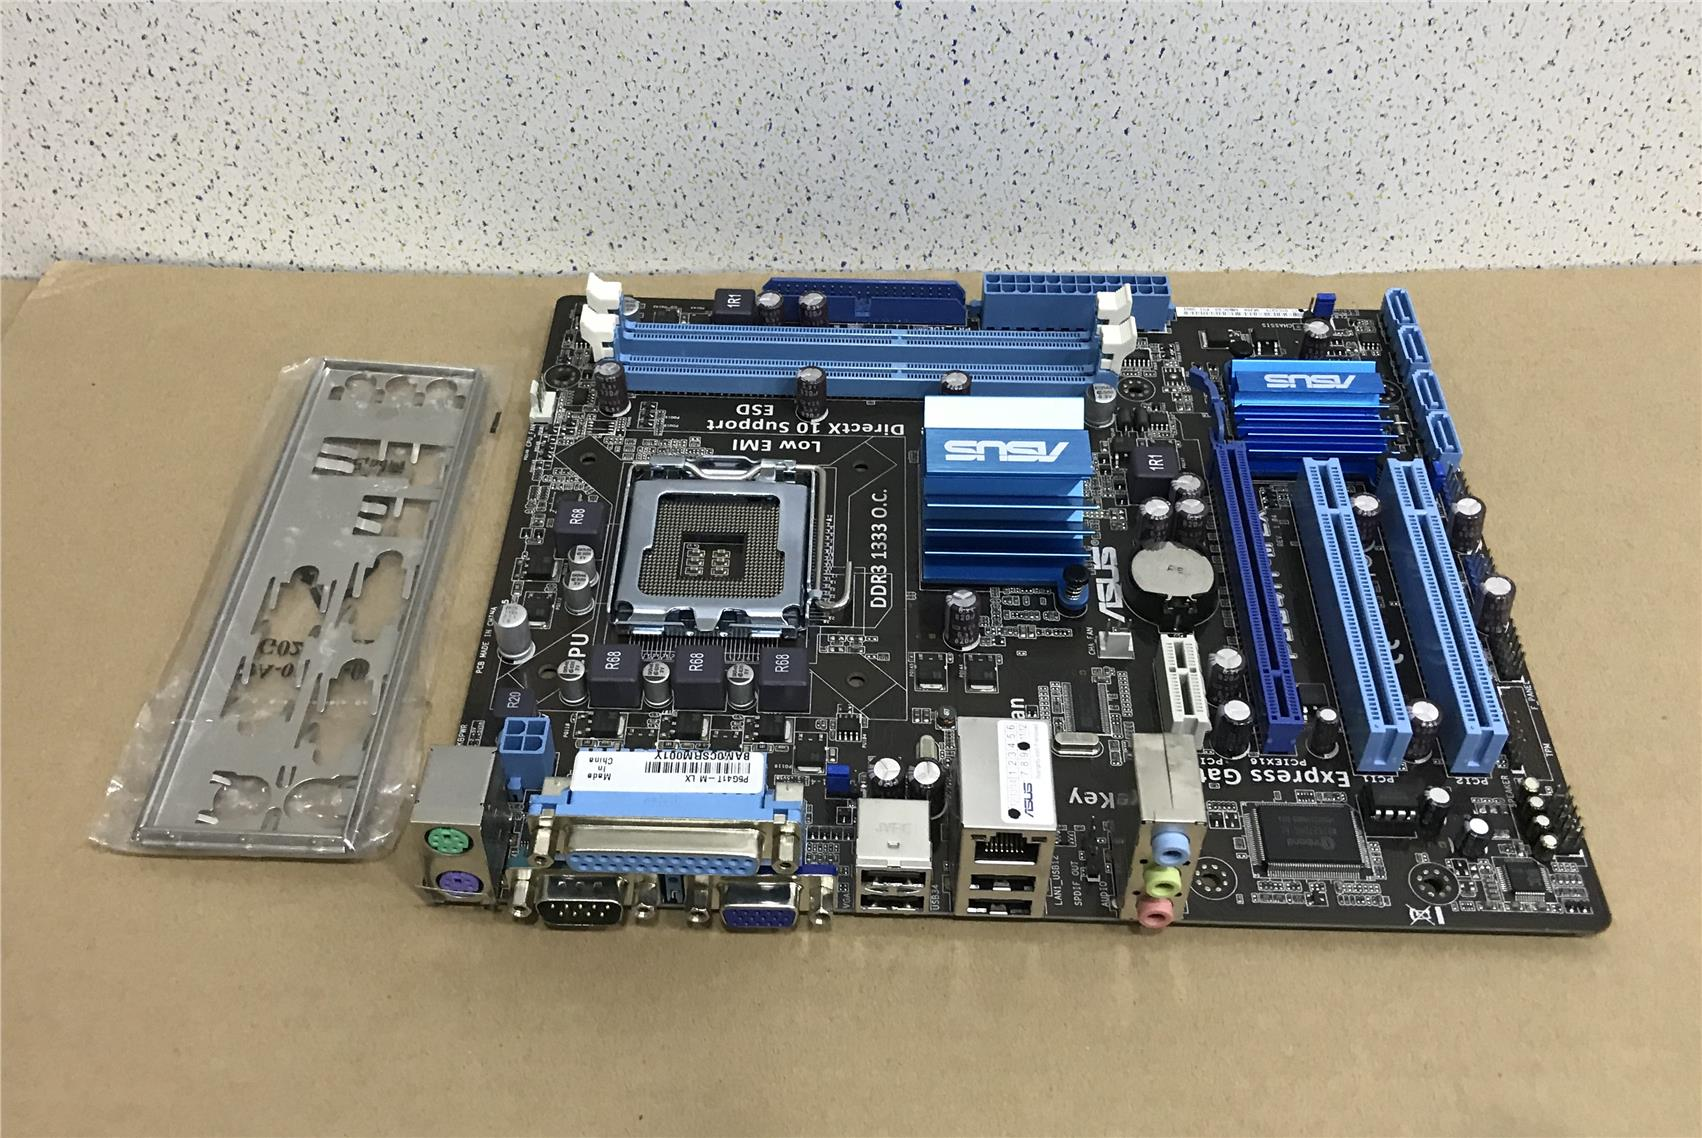 DRIVERS FOR ASUS P5G41T-M LX MOTHERBOARD